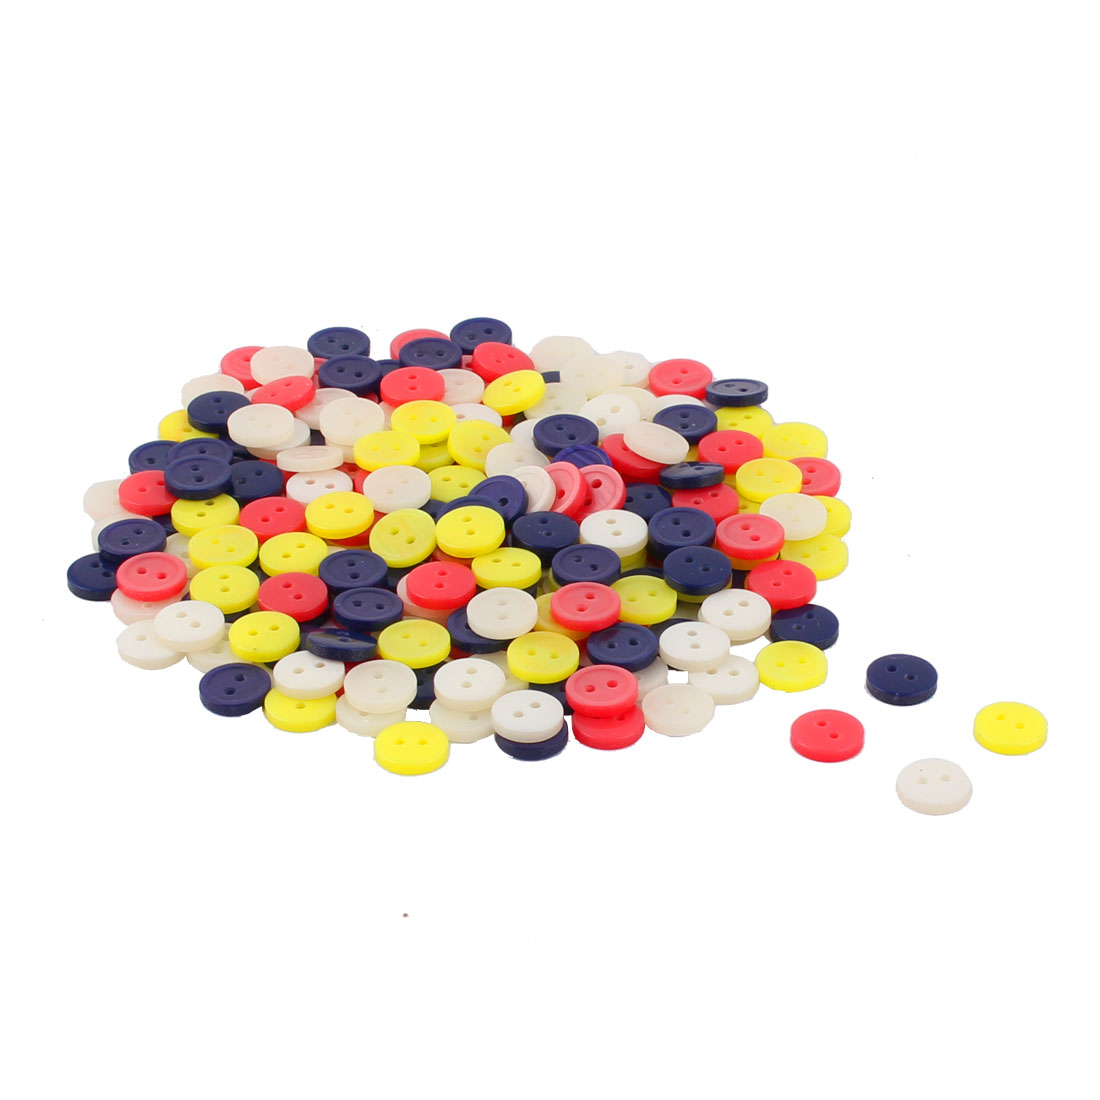 Household Plastic Round Shaped Clothes Trousers Shirt Button Assorted Color 208 Pcs